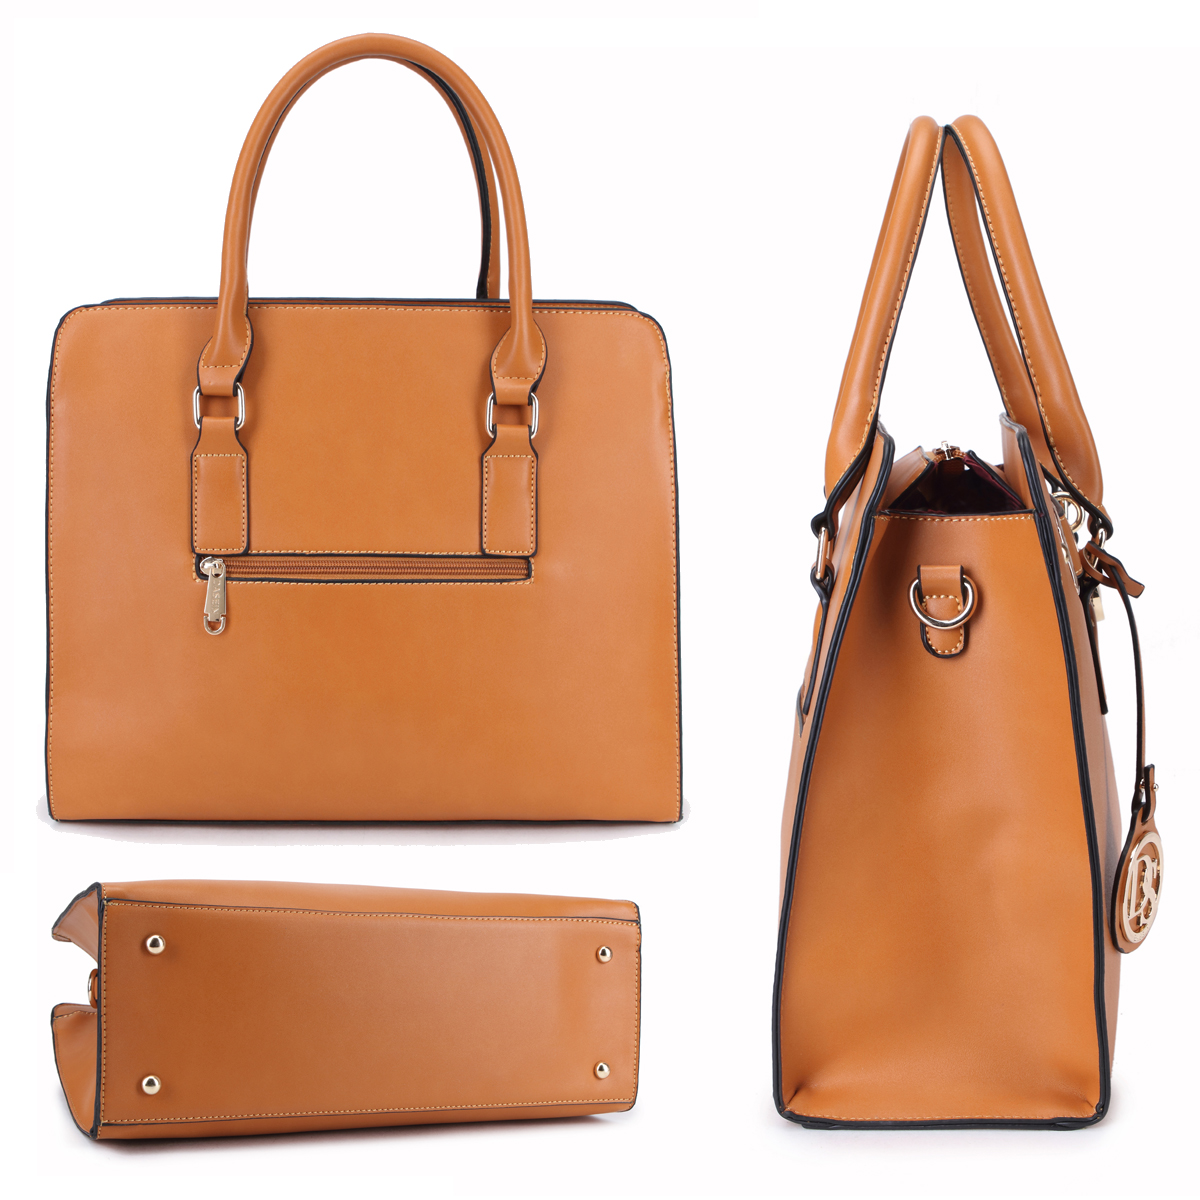 Dasein Large Saffiano Leather Padlock Satchel with Matching Wallet